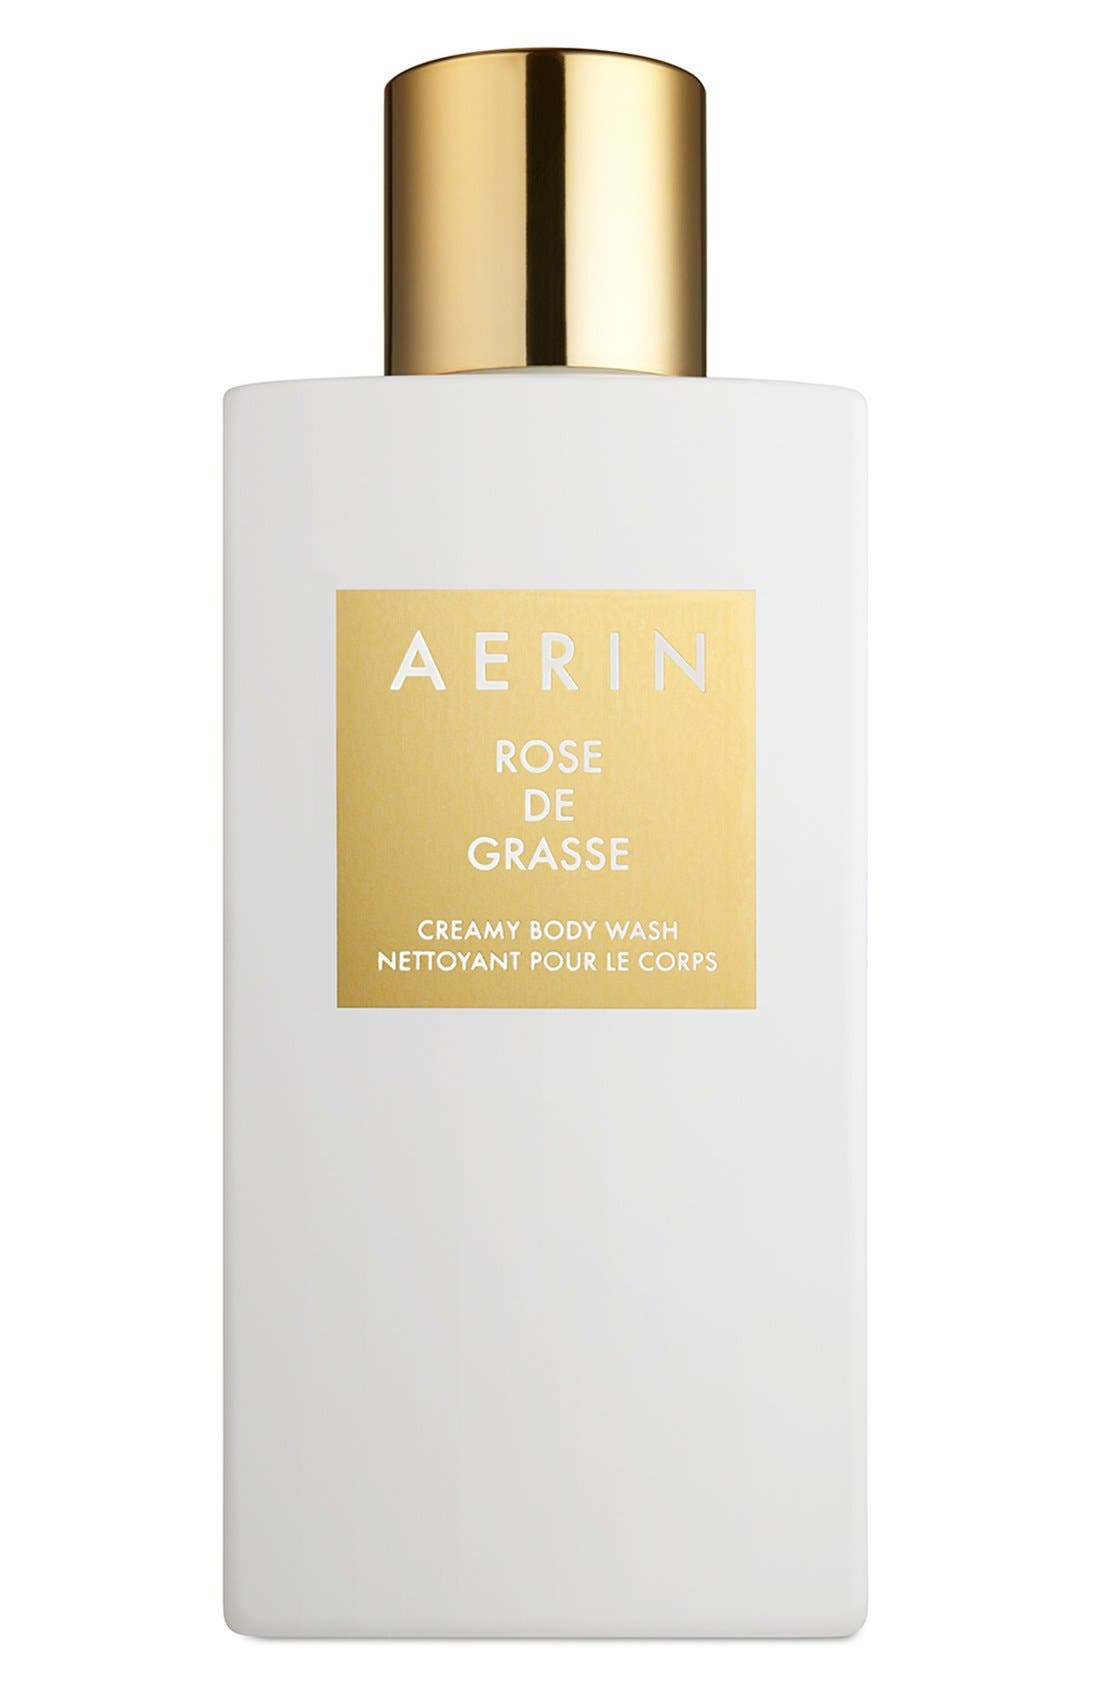 AERIN Beauty Rose de Grasse Body Wash (Limited Edition)